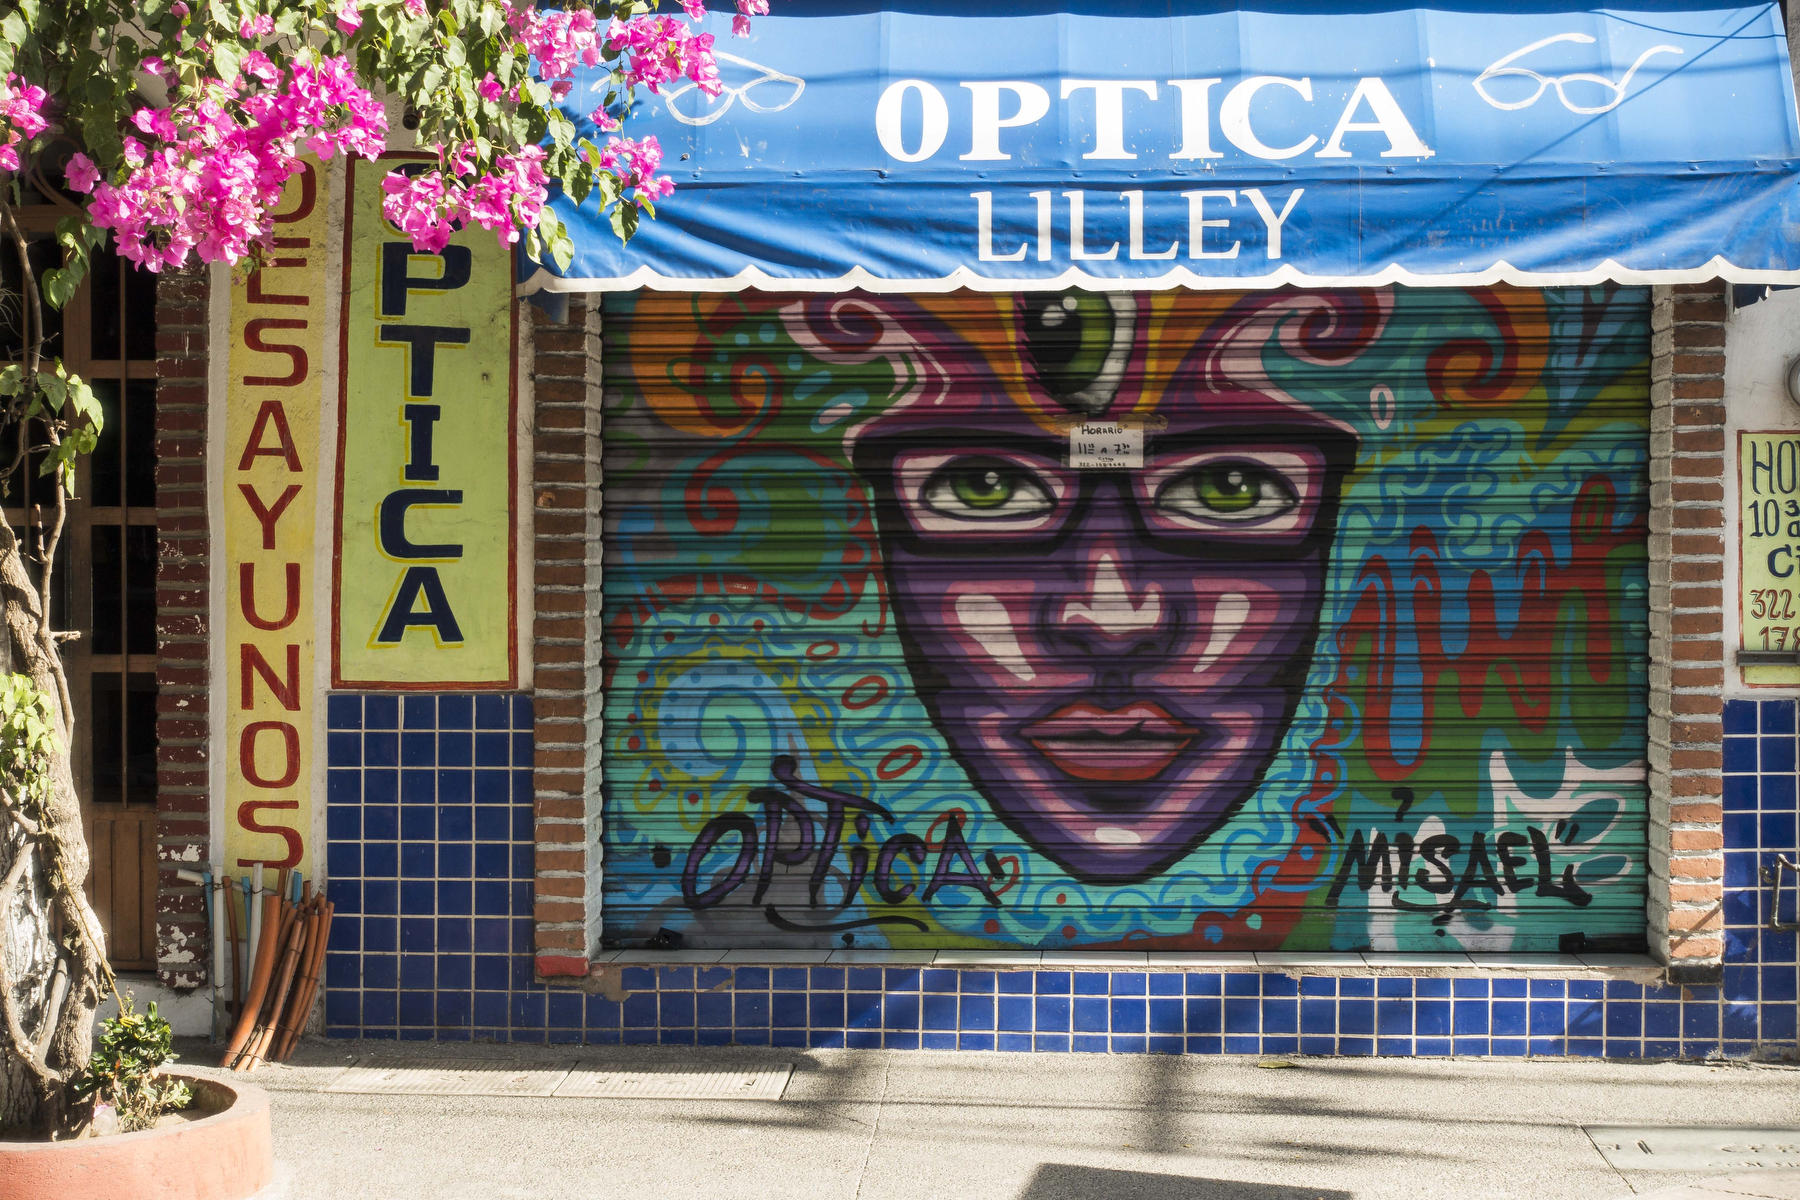 A face wearing glasses decorates the shutters of an optical store in Old Town. : PUERTO VALLARTA - Wall Art & Bicycle Tour : Viviane Moos |  Documentary Photographer